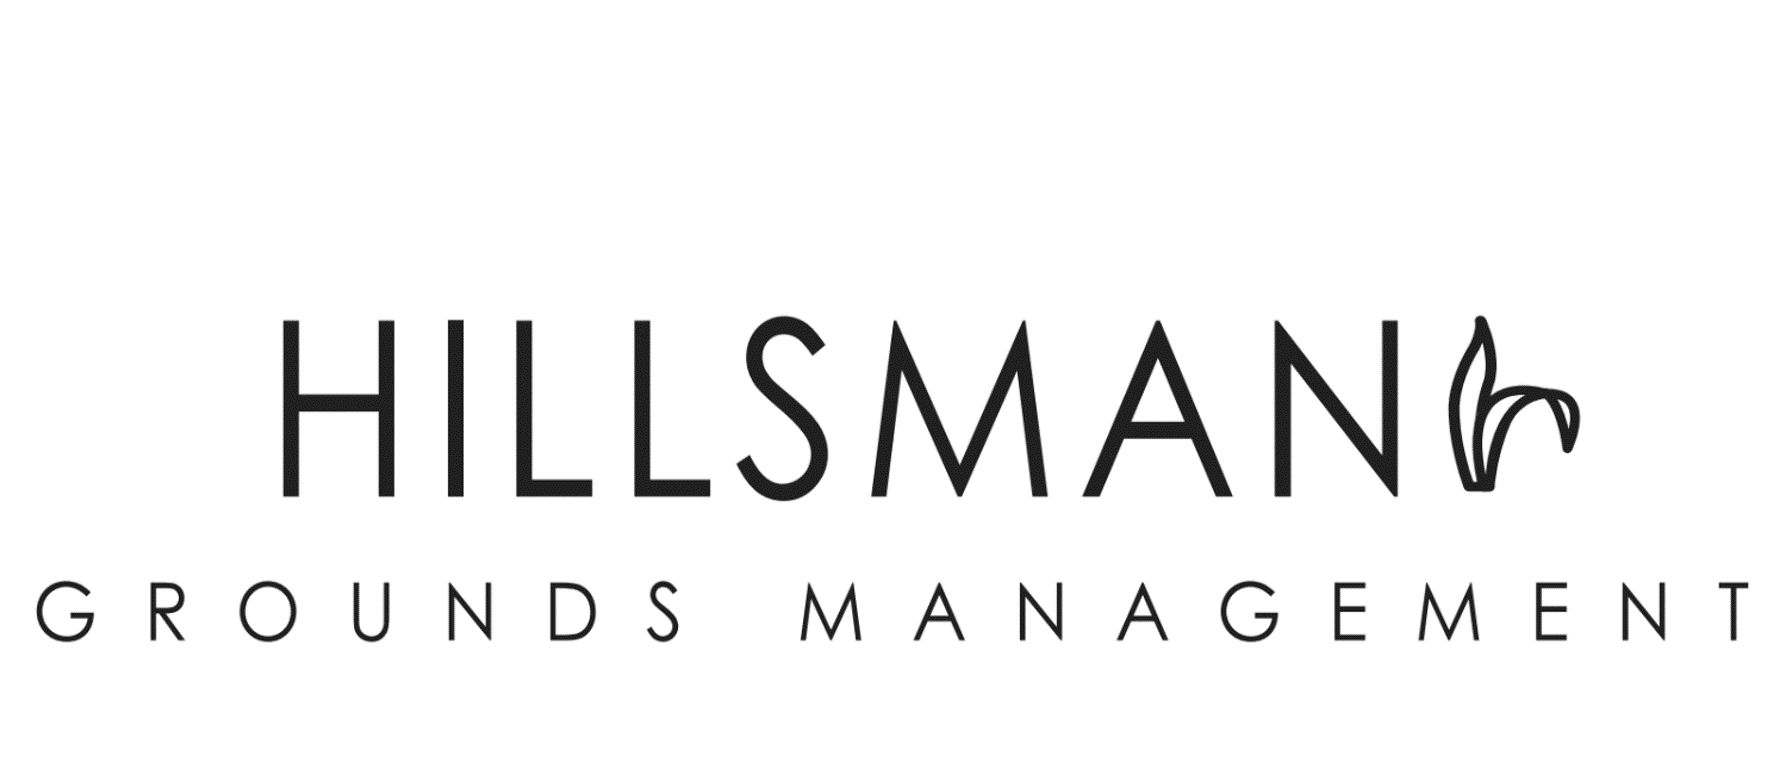 Hillsman Grounds Management, LLC